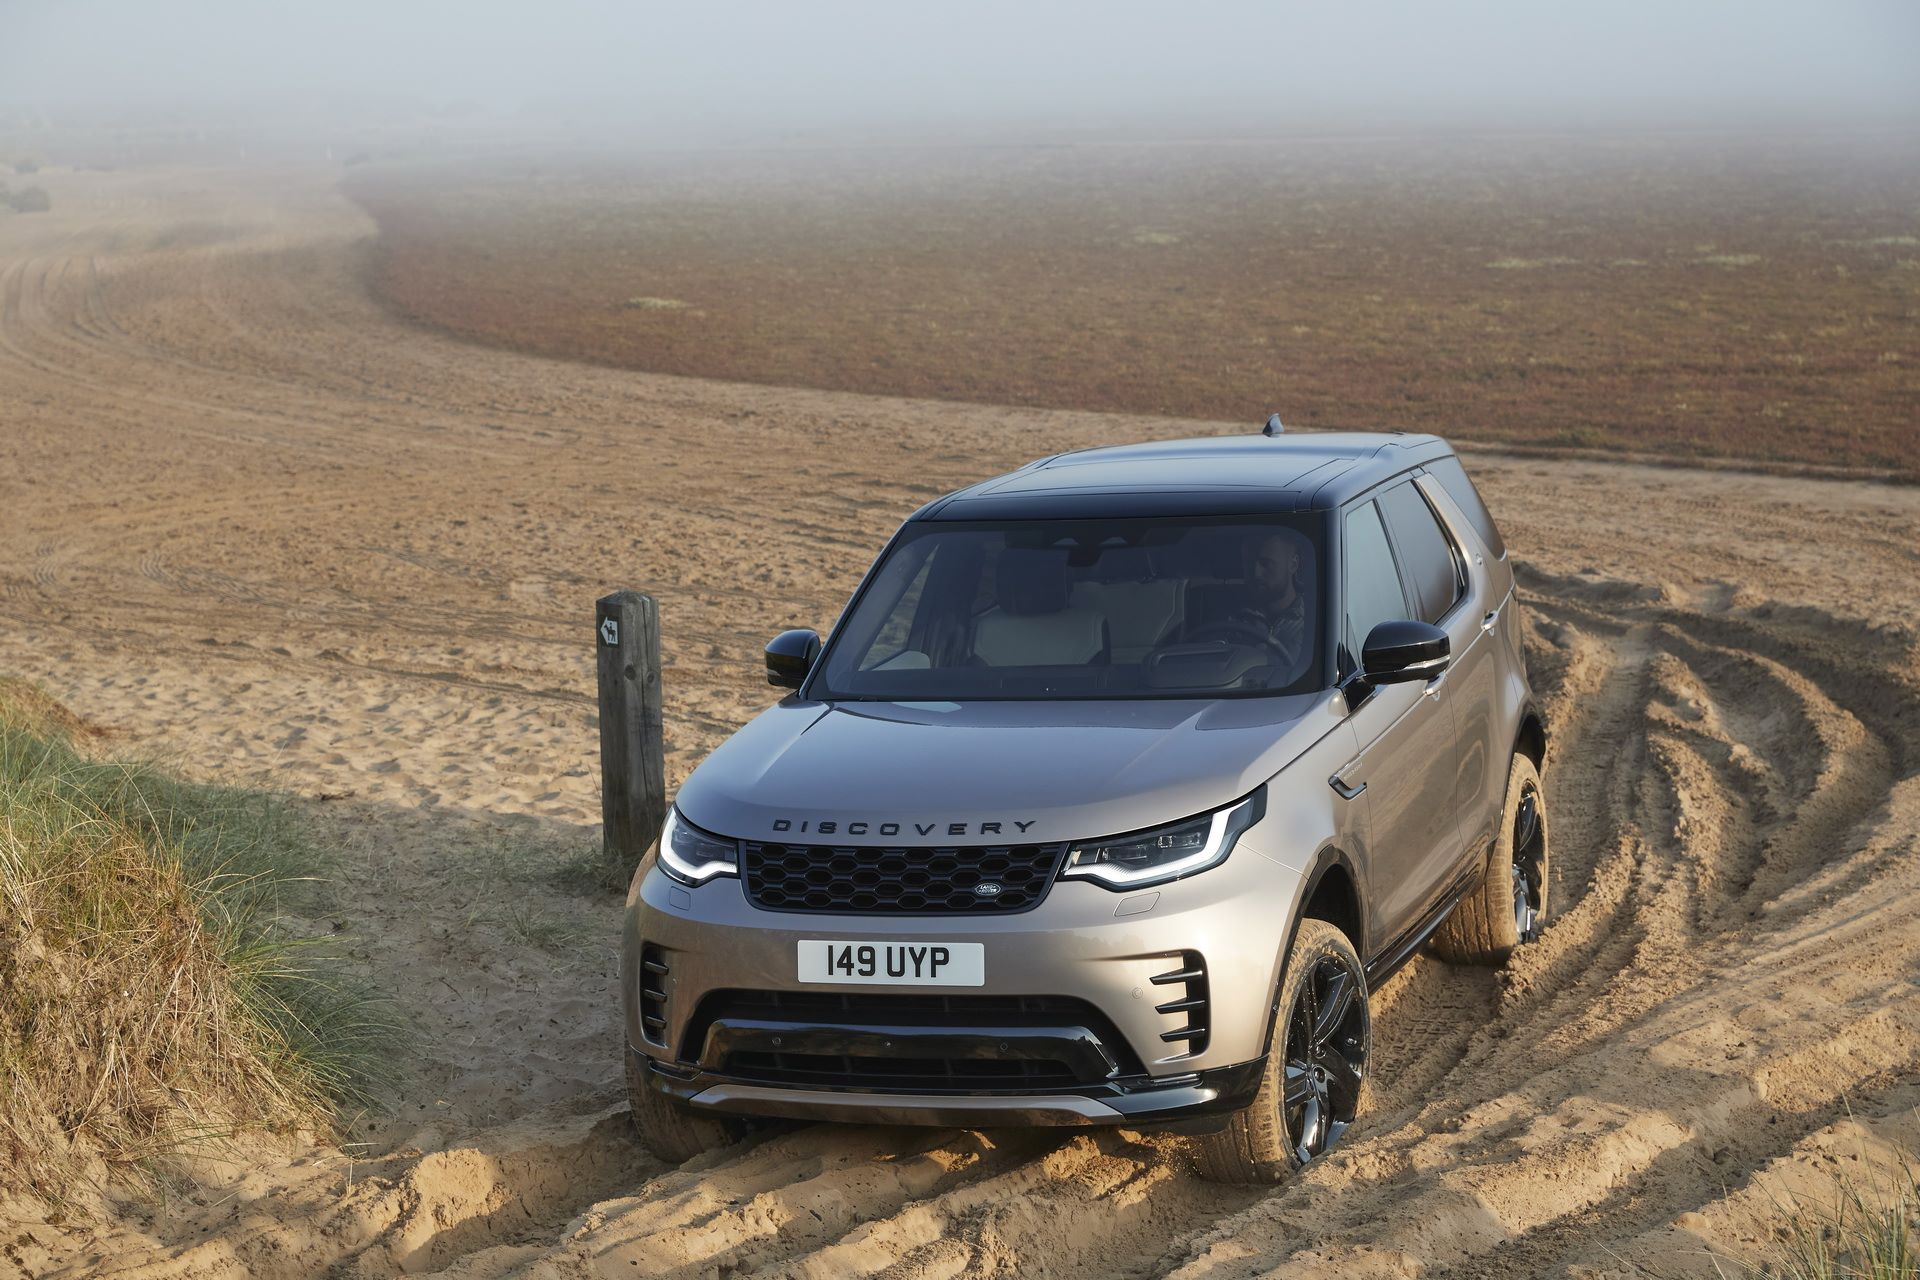 2021-Land-Rover-Discovery-34-1